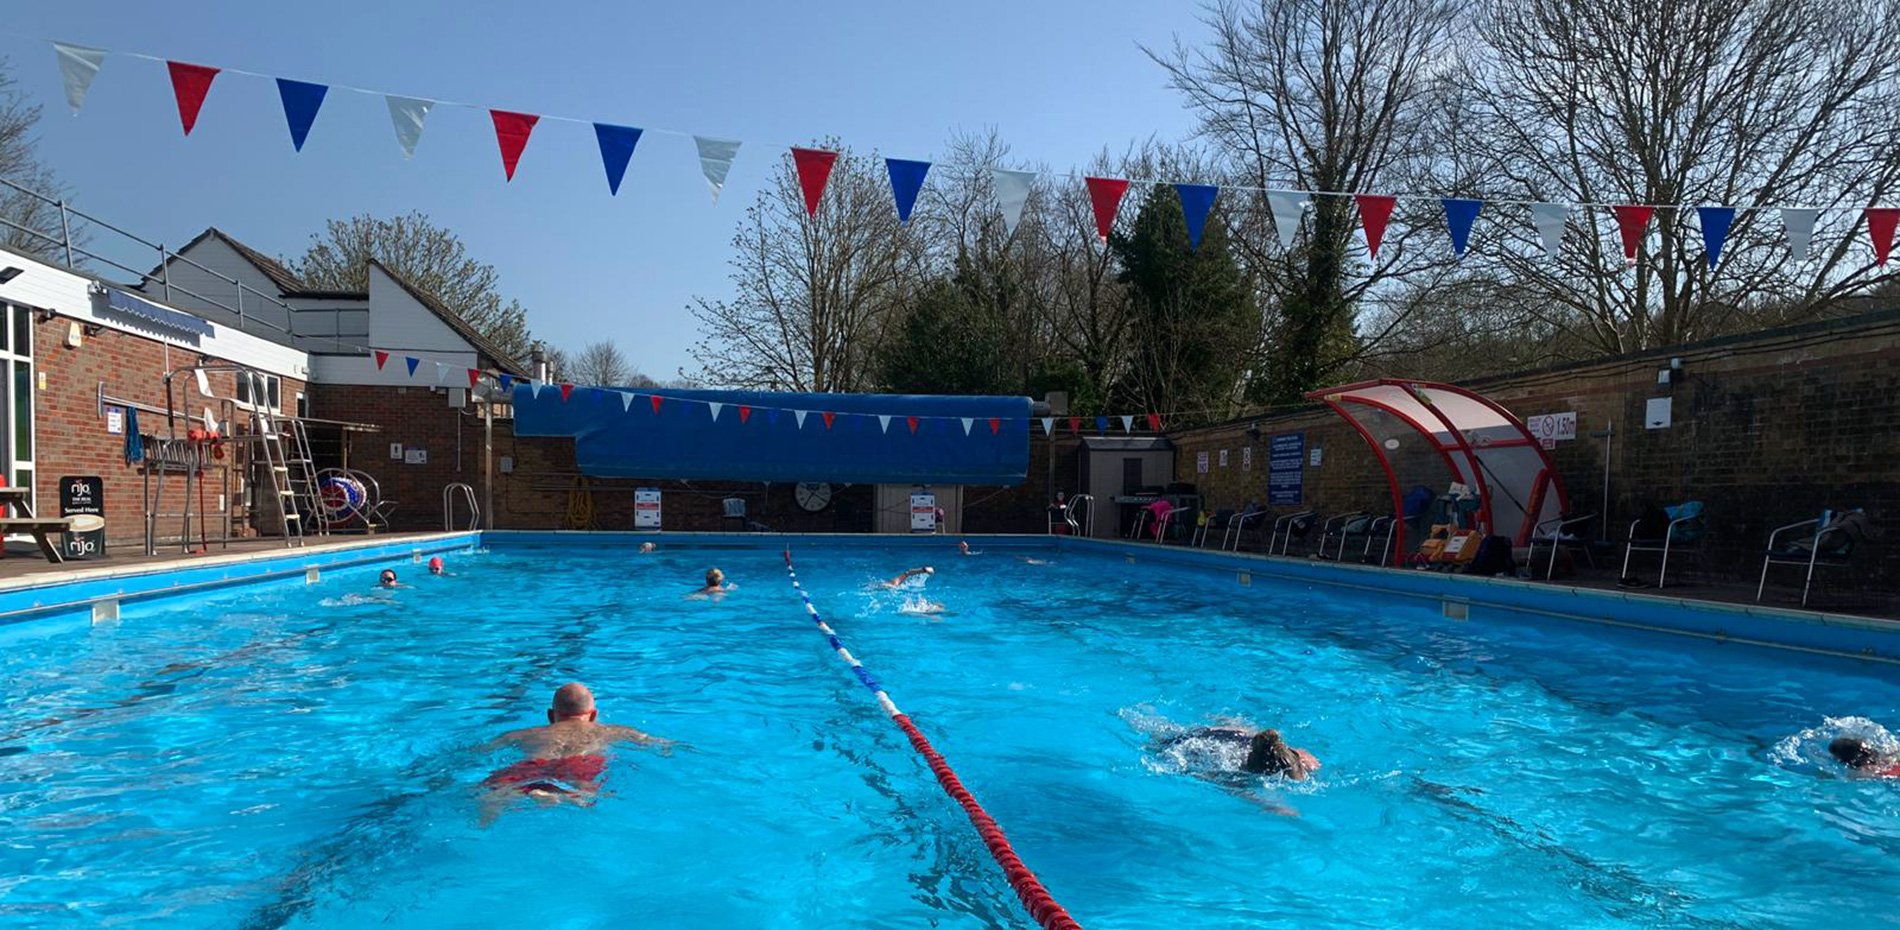 Socially distanced swimming in our first weeek of re-opening March 2021